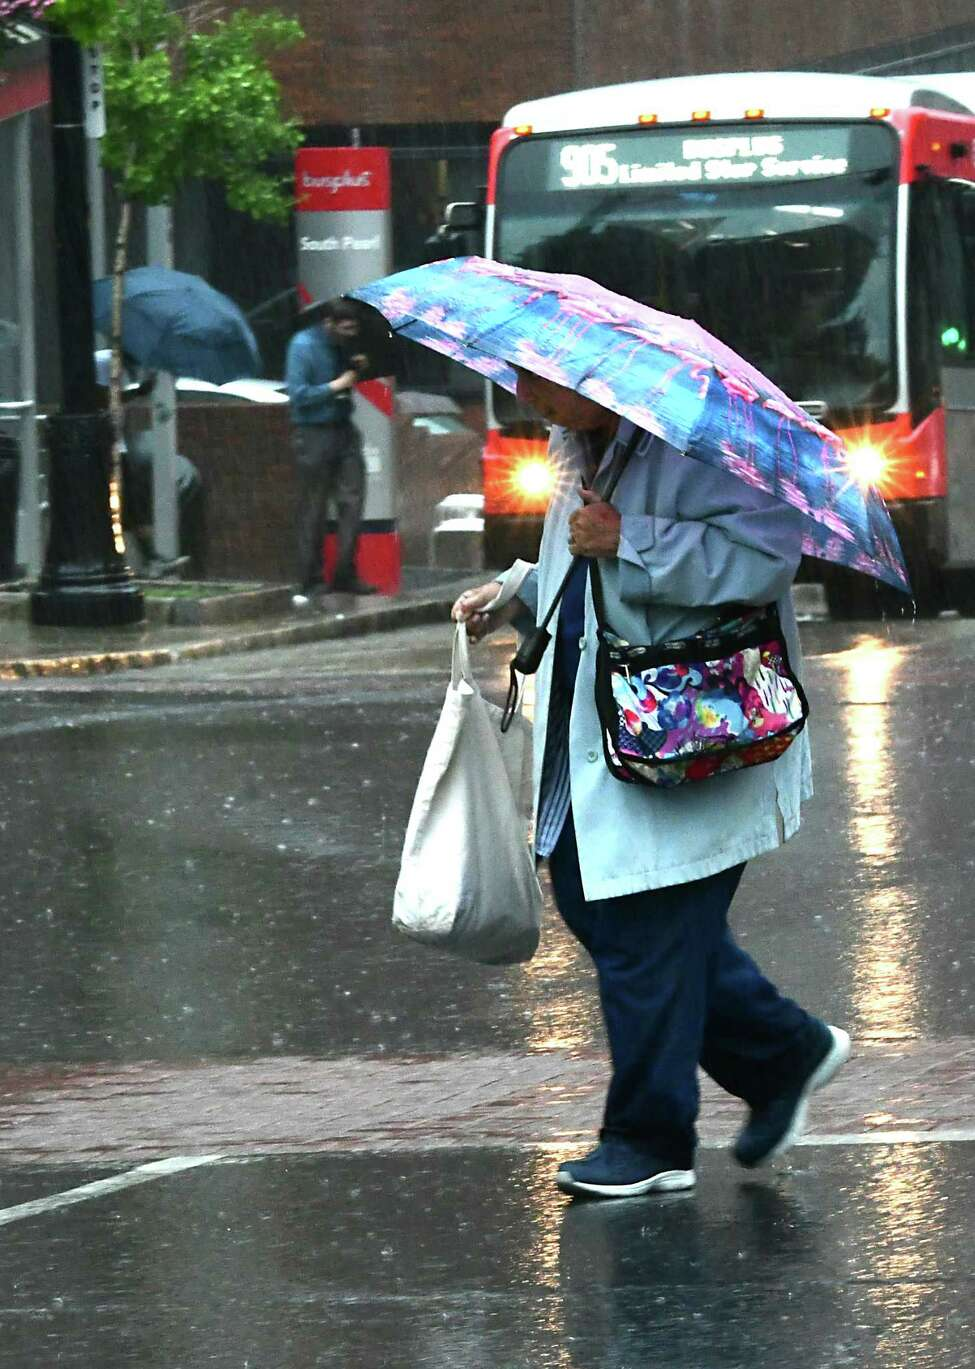 A woman uses an umbrella as she makes her way across State St. during a rain downpour on Wednesday, July 17, 2019 in Albany, N.Y. (Lori Van Buren/Times Union)